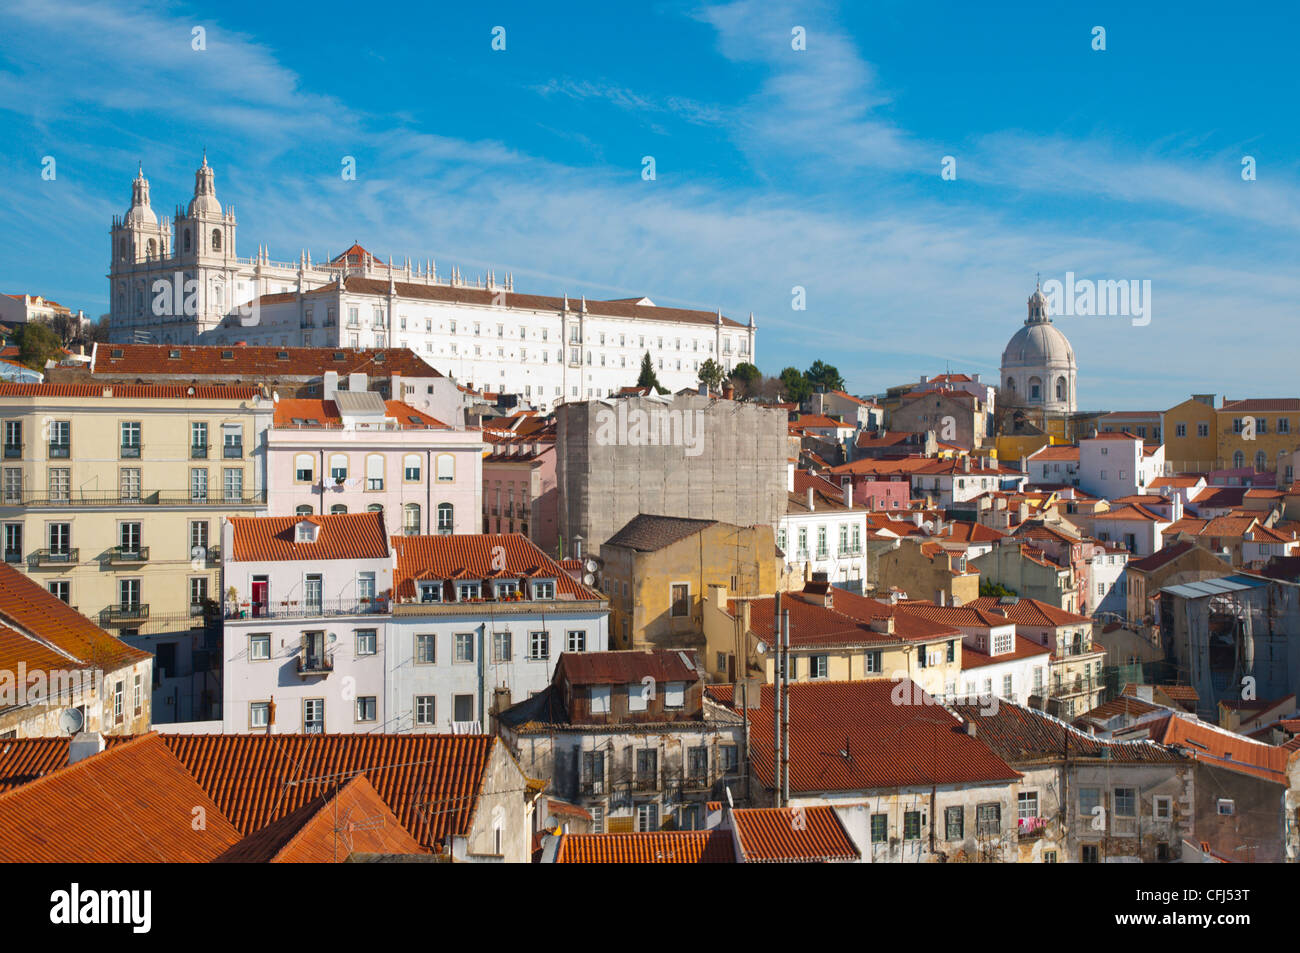 Alfama district with Sao Vicente de Fora church central Lisbon Portugal Europe - Stock Image